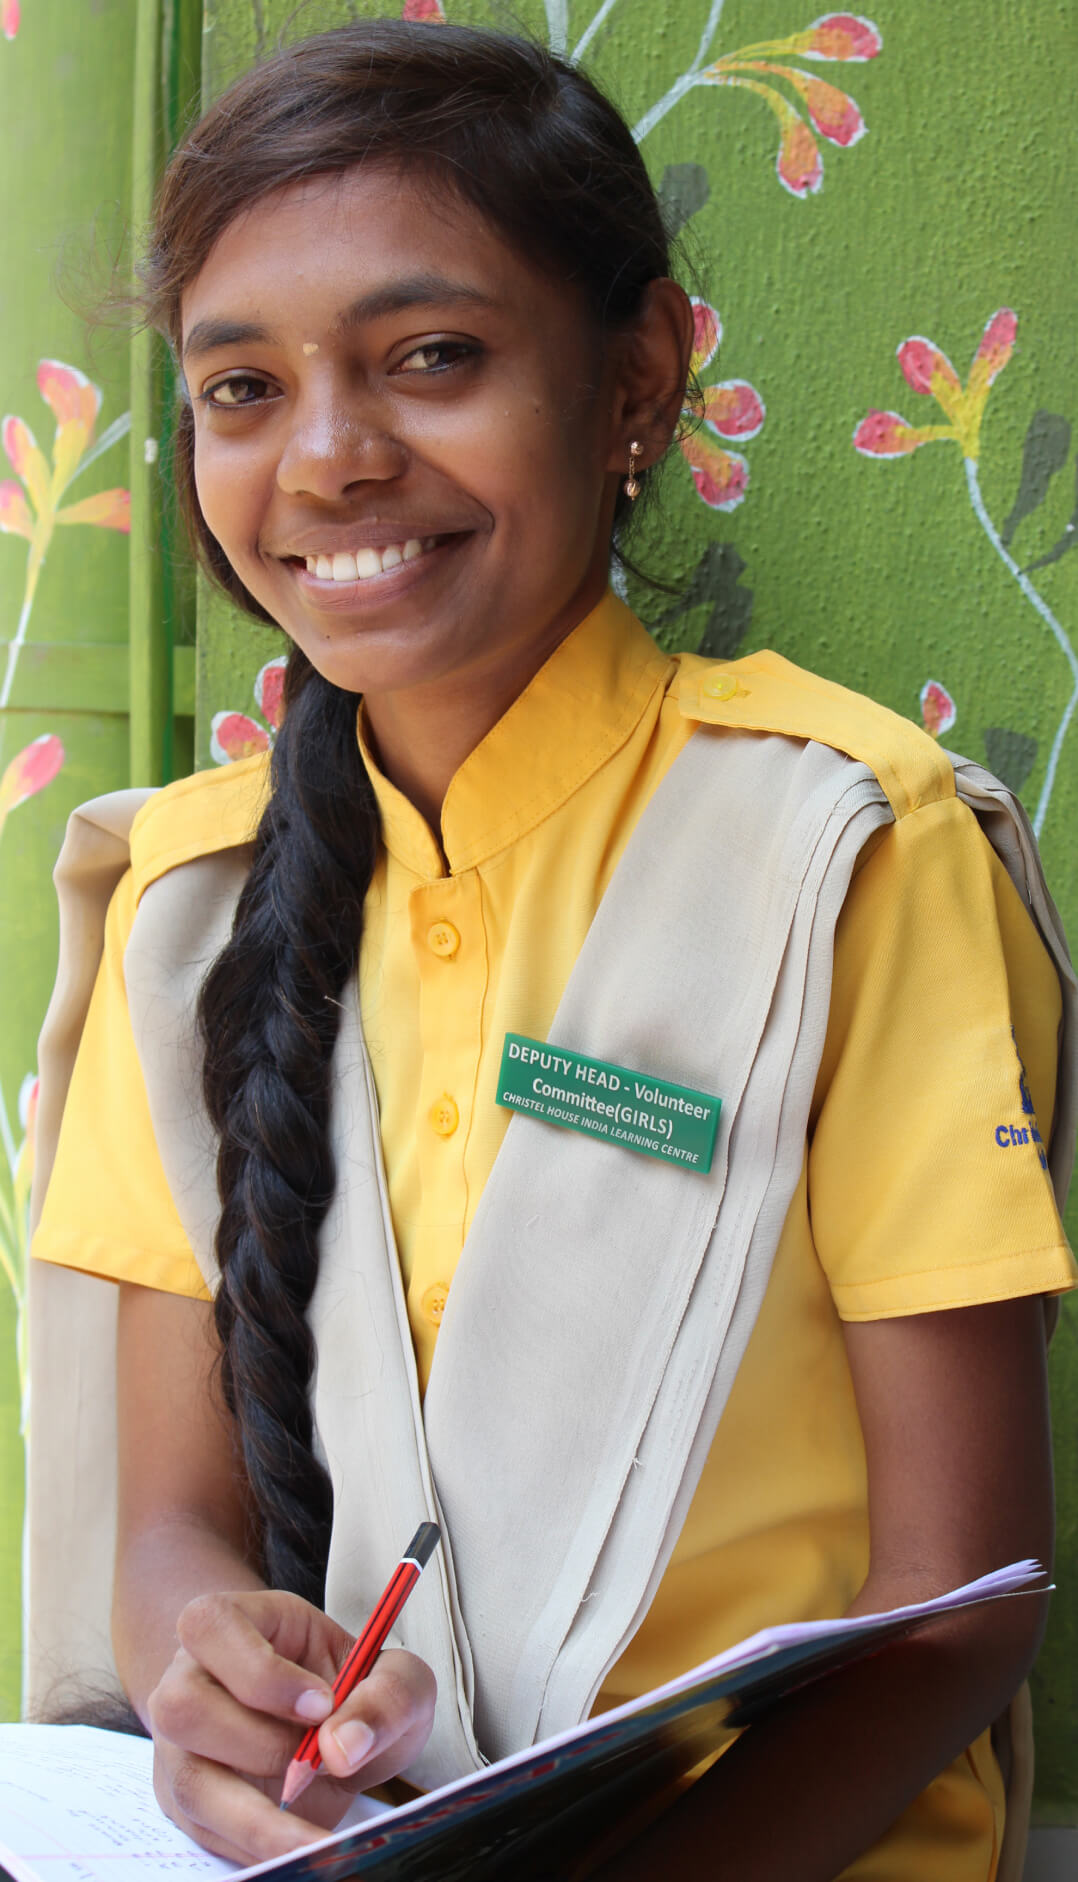 Soumya smiles happily after winning the election